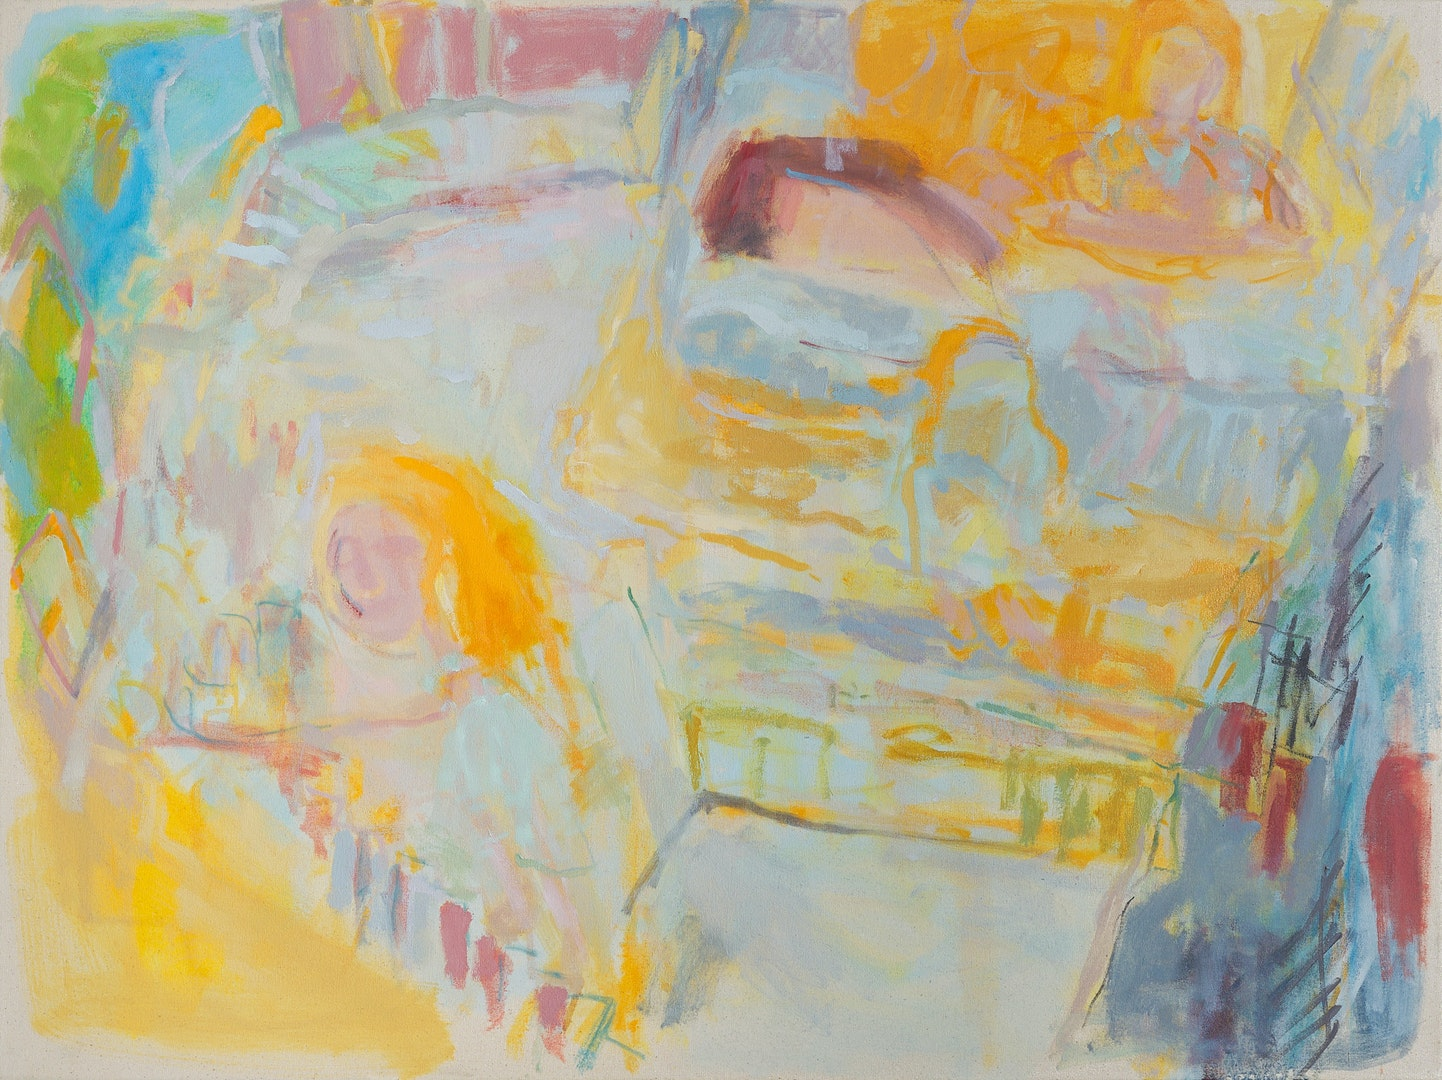 'Five Flights from the Kitchen', Suzanne Baker, Oil on canvas, 76 x 101 cm